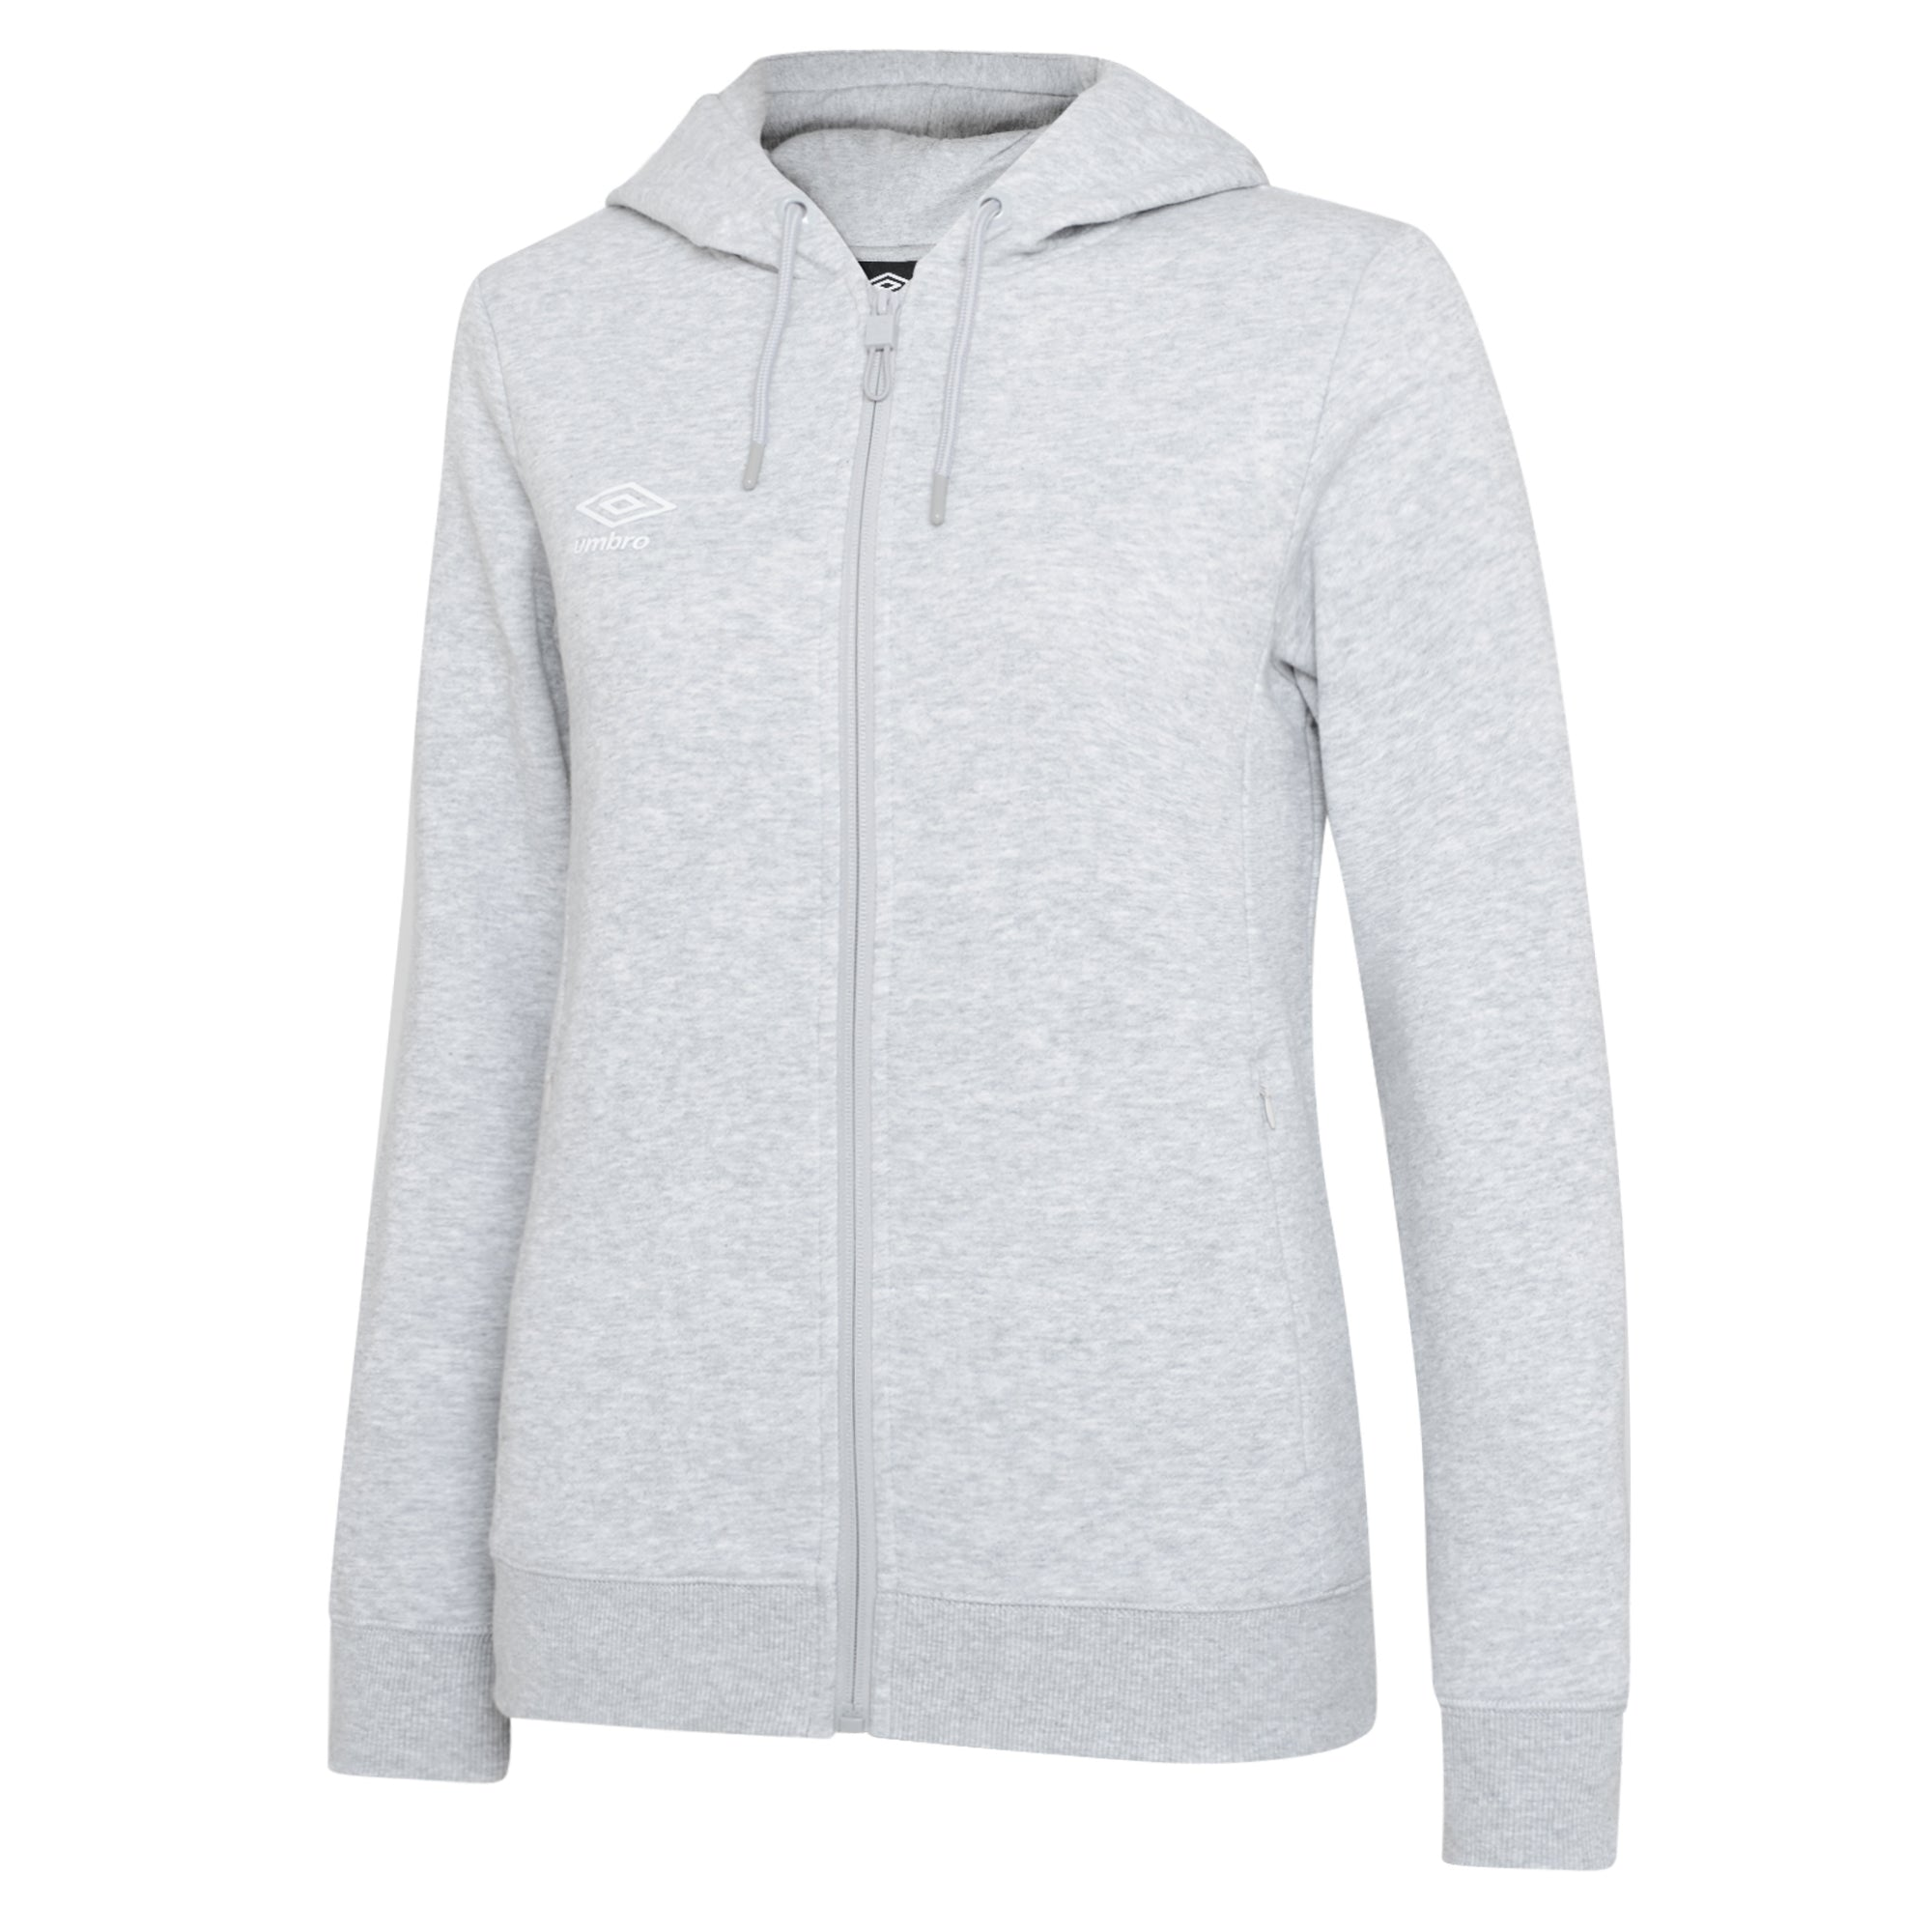 Umbro Club Leisure Women's Zipped Hoody - Grey Marl/White